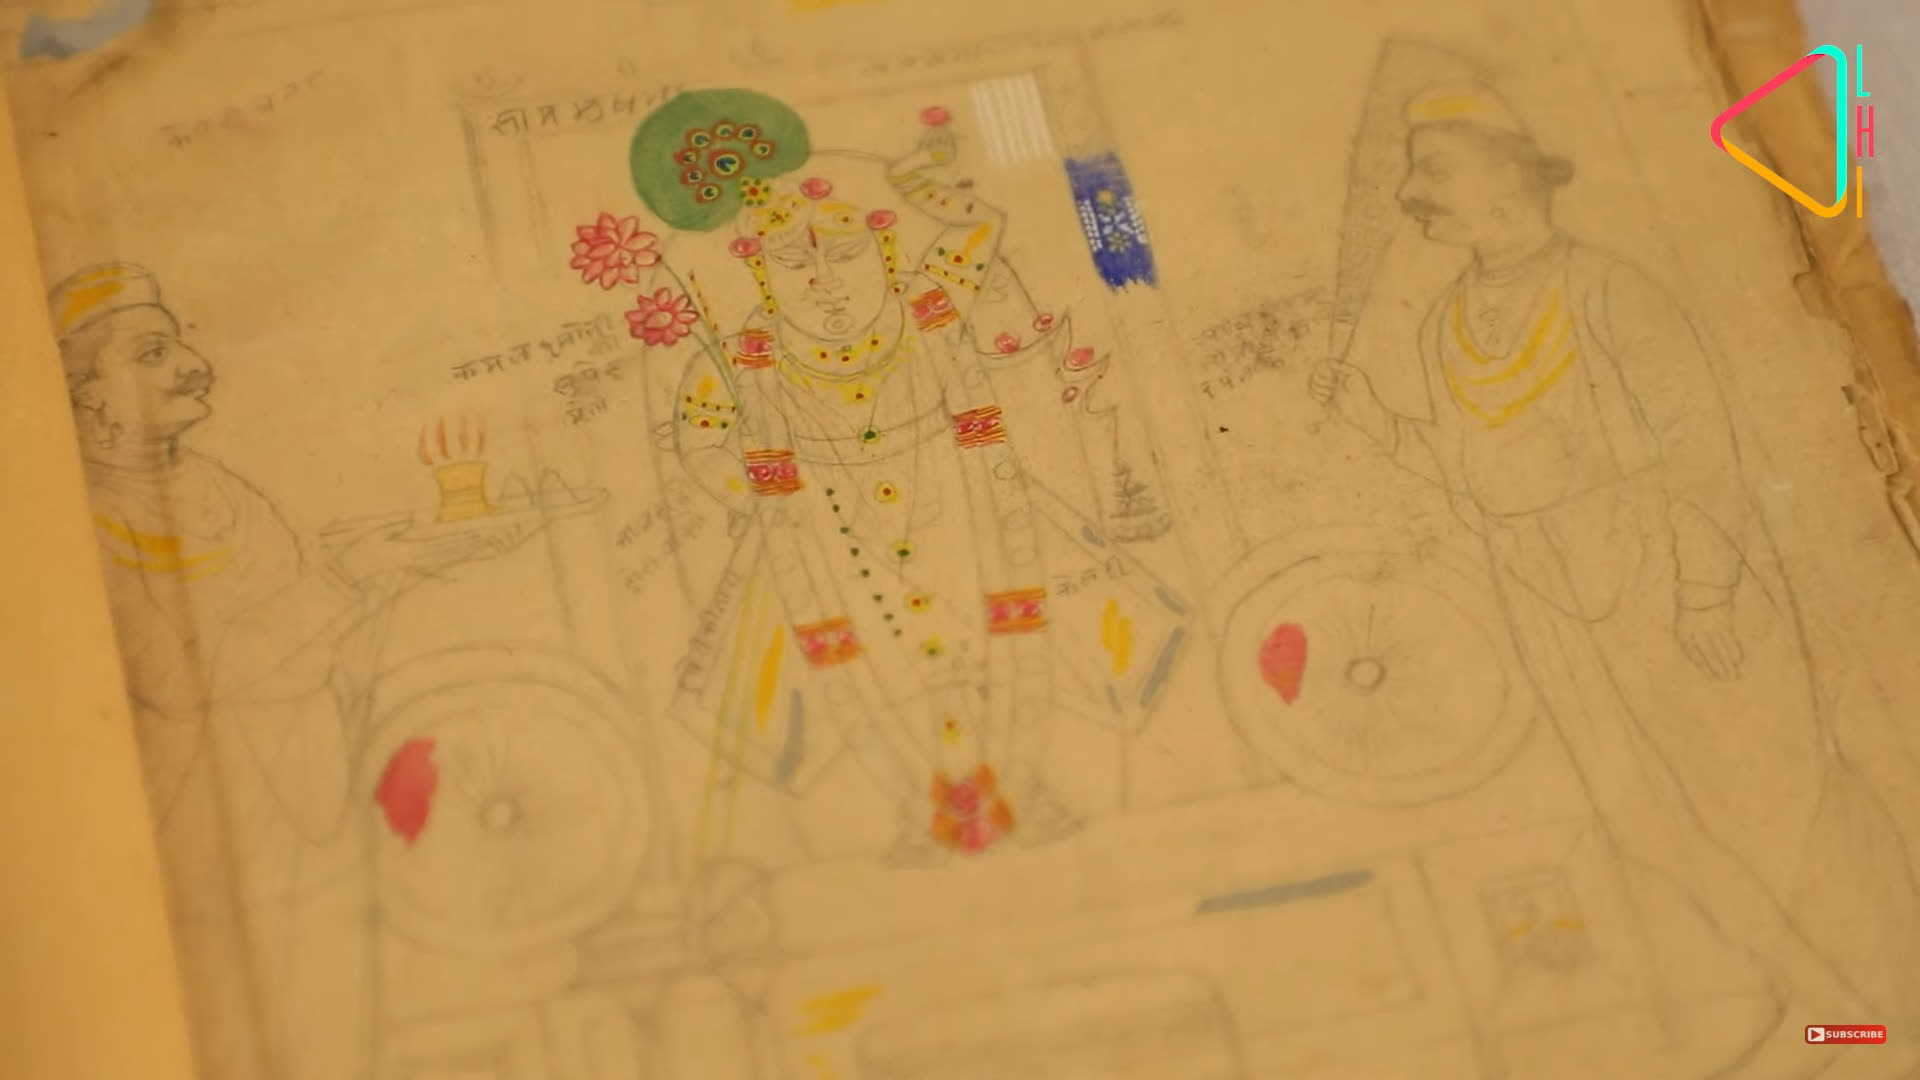 A sketch of the Pichhwai Painting in making   LHI